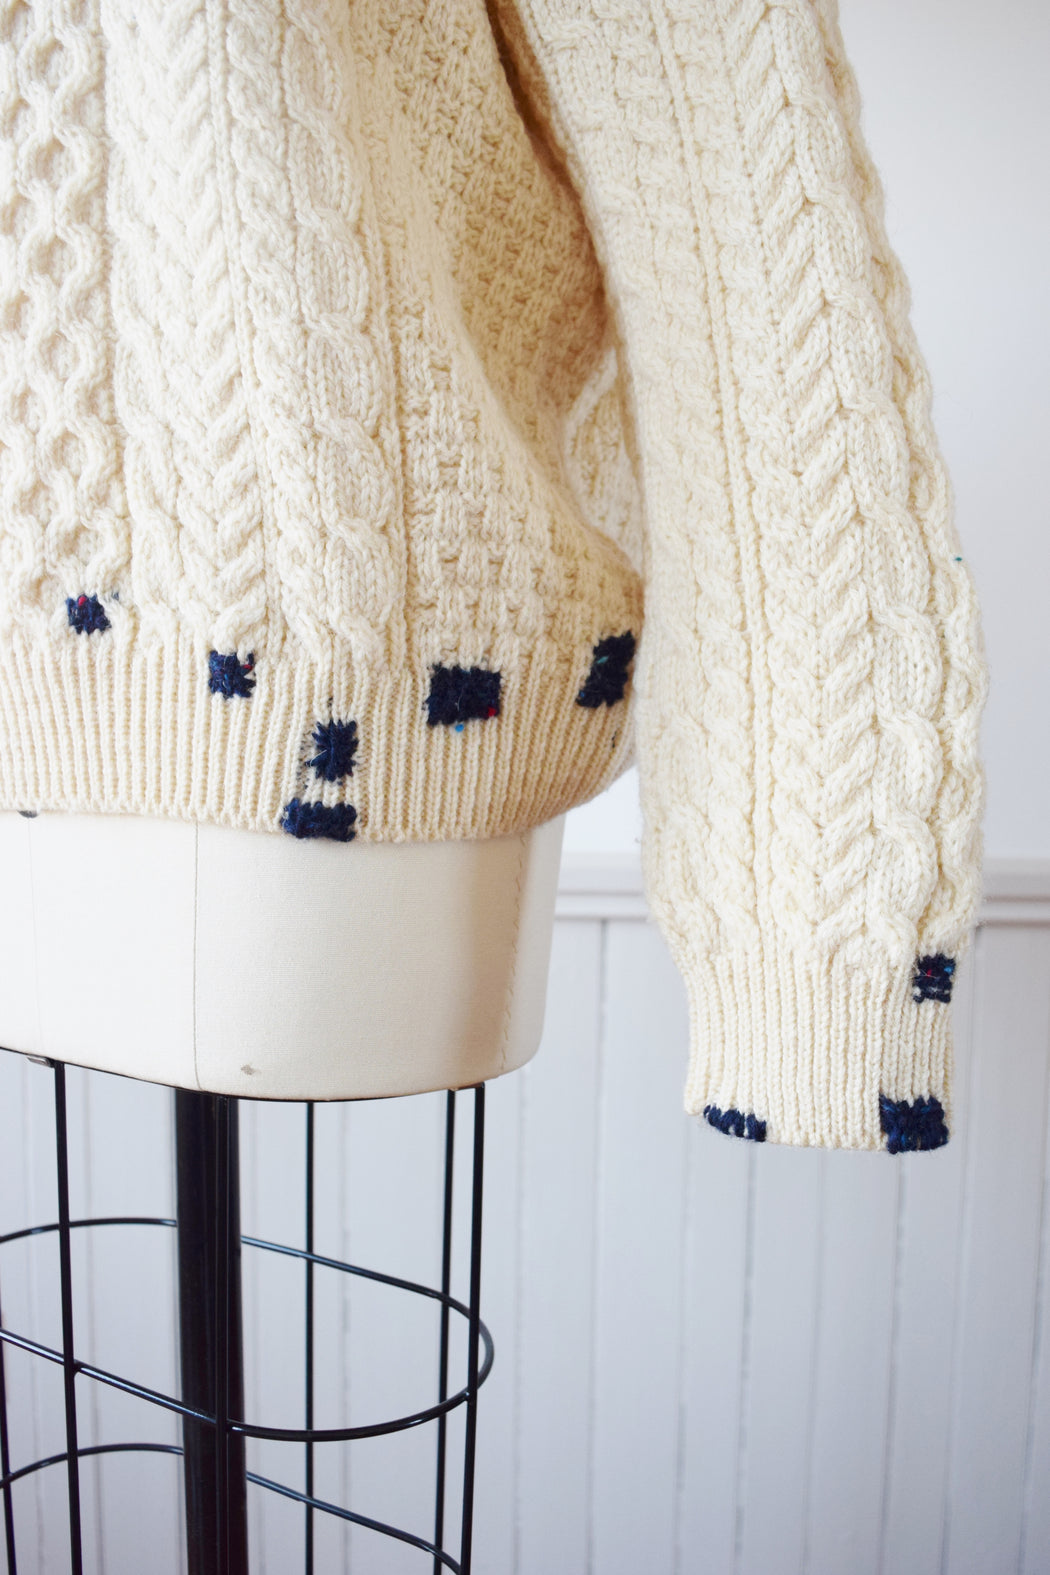 Make-Do Wool Sweater | Irish Cableknit with Custom Mends